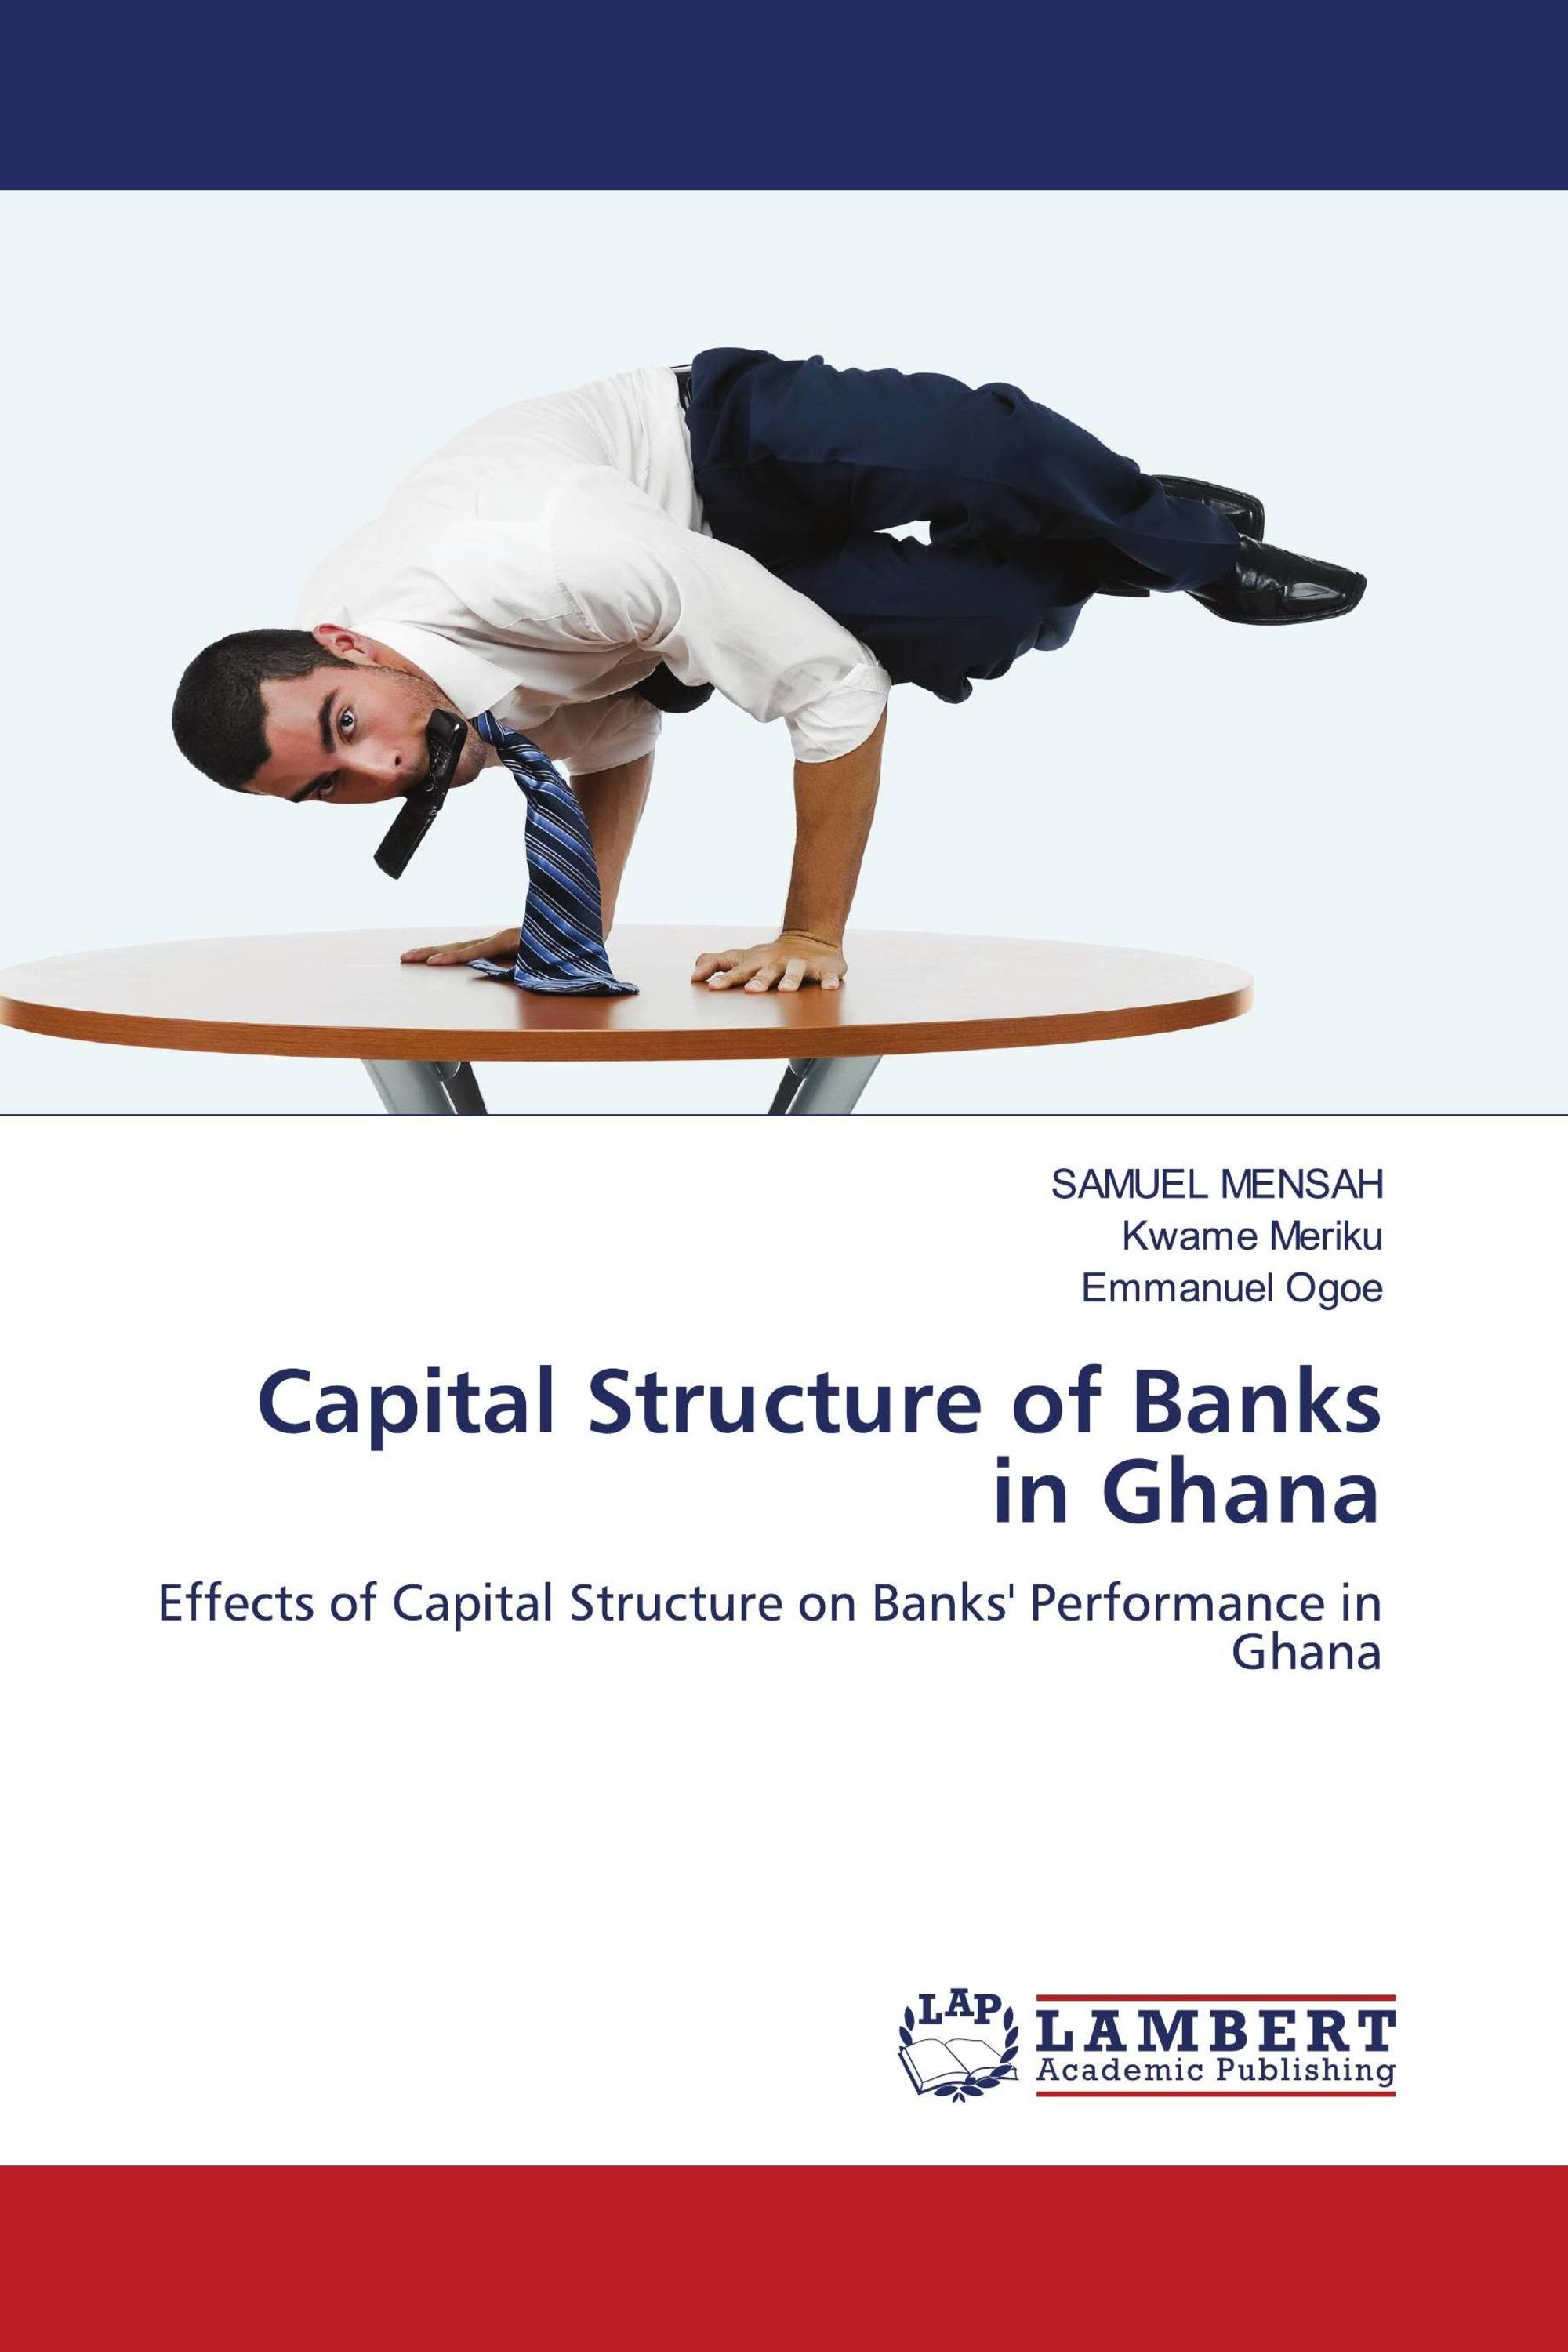 Thesis on banks in ghana